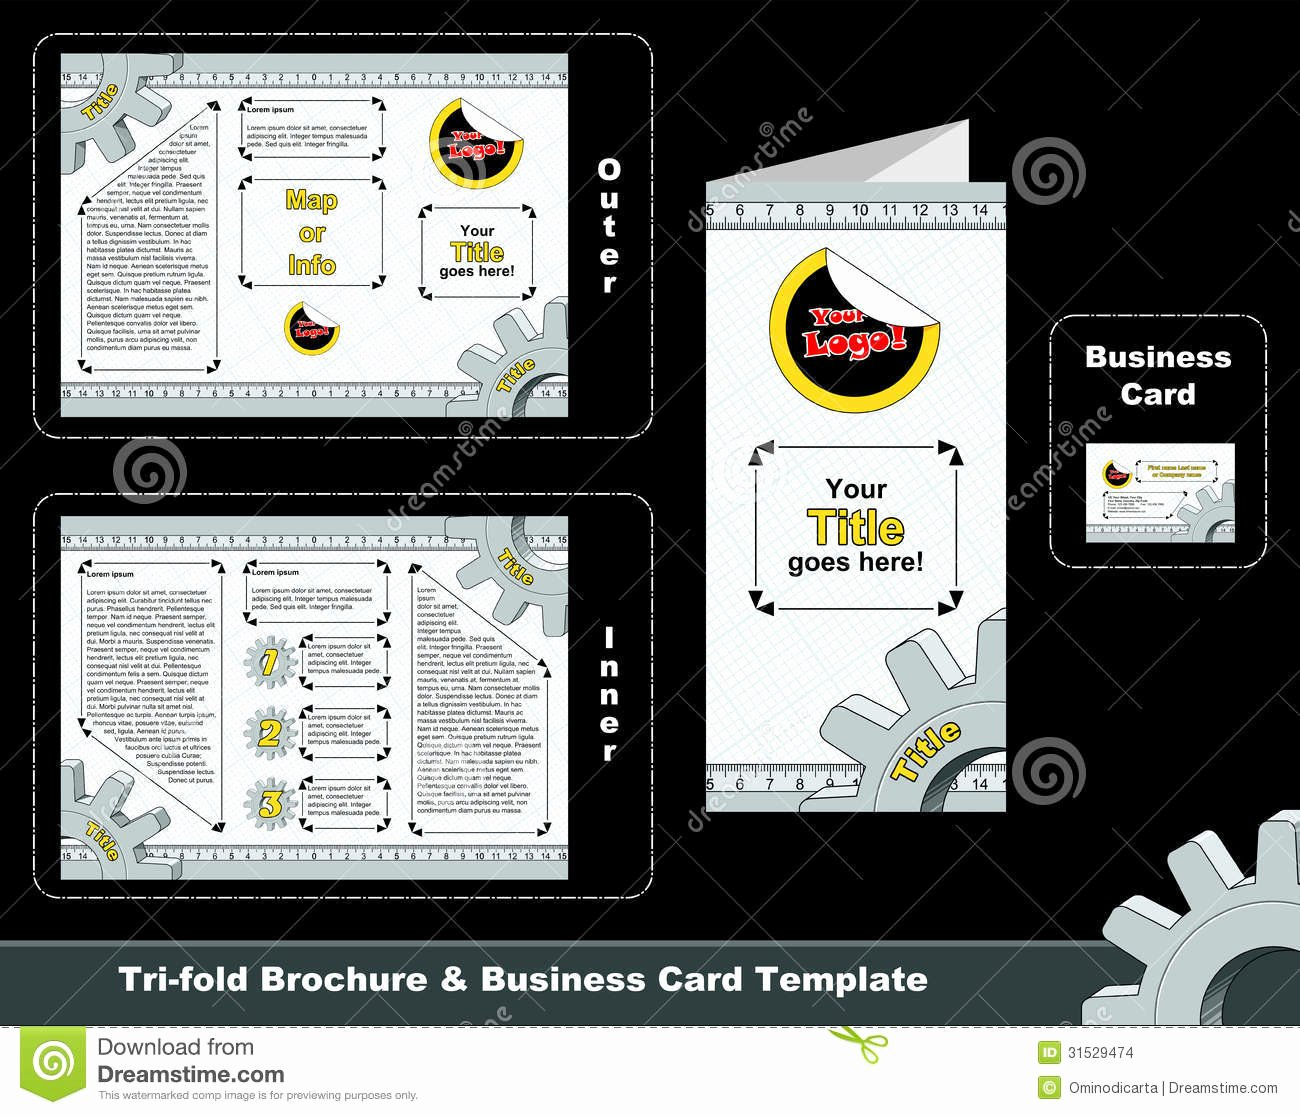 Folding Business Card Templates Awesome Tri Fold Depliant and Business Card Template Stock Image